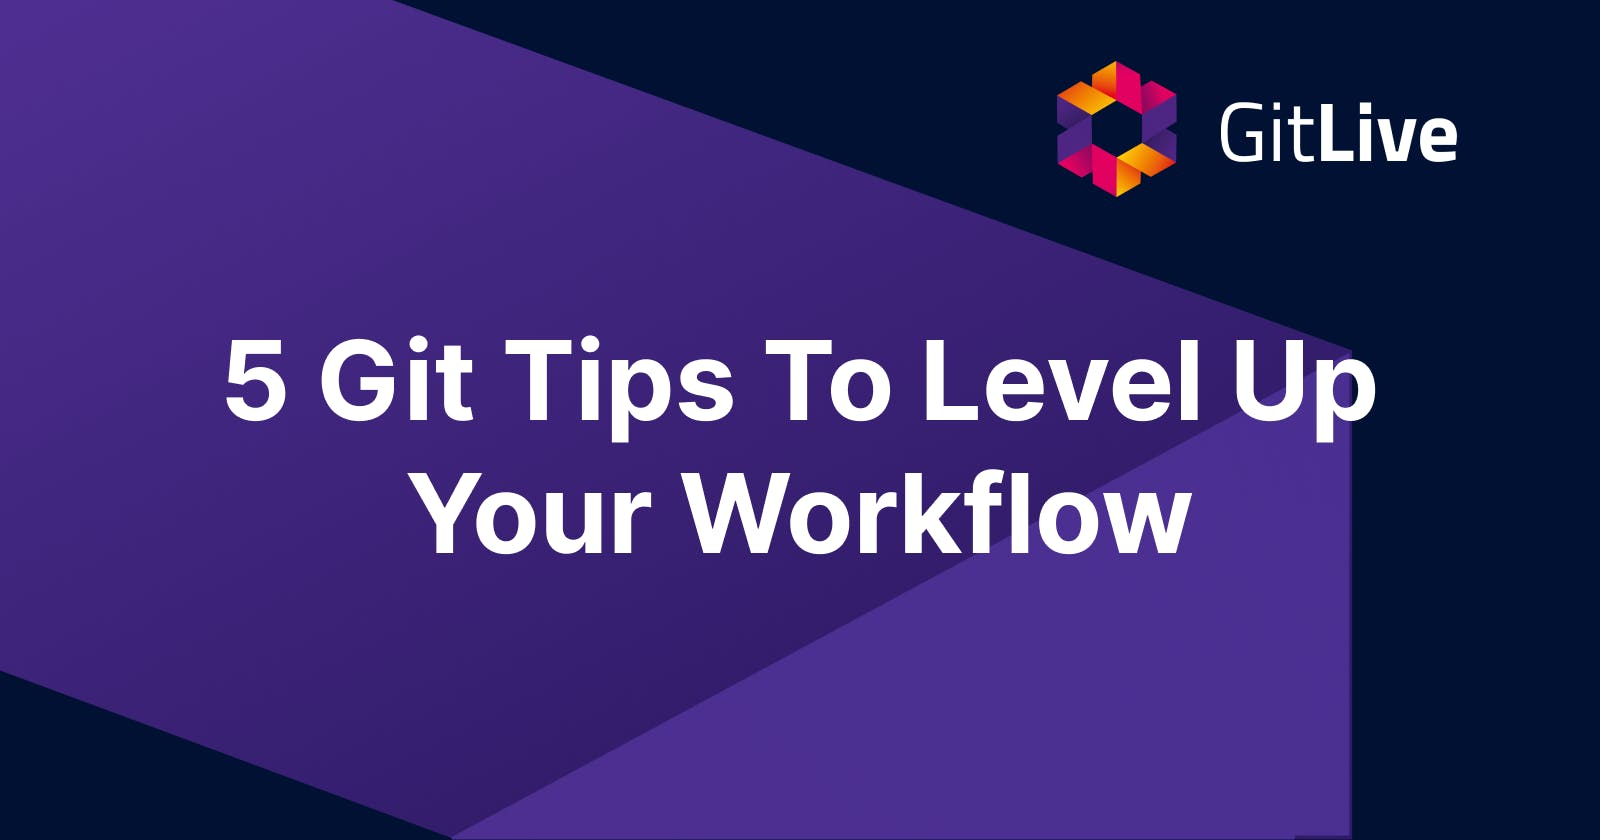 5 Git Tips To Level Up Your Workflow